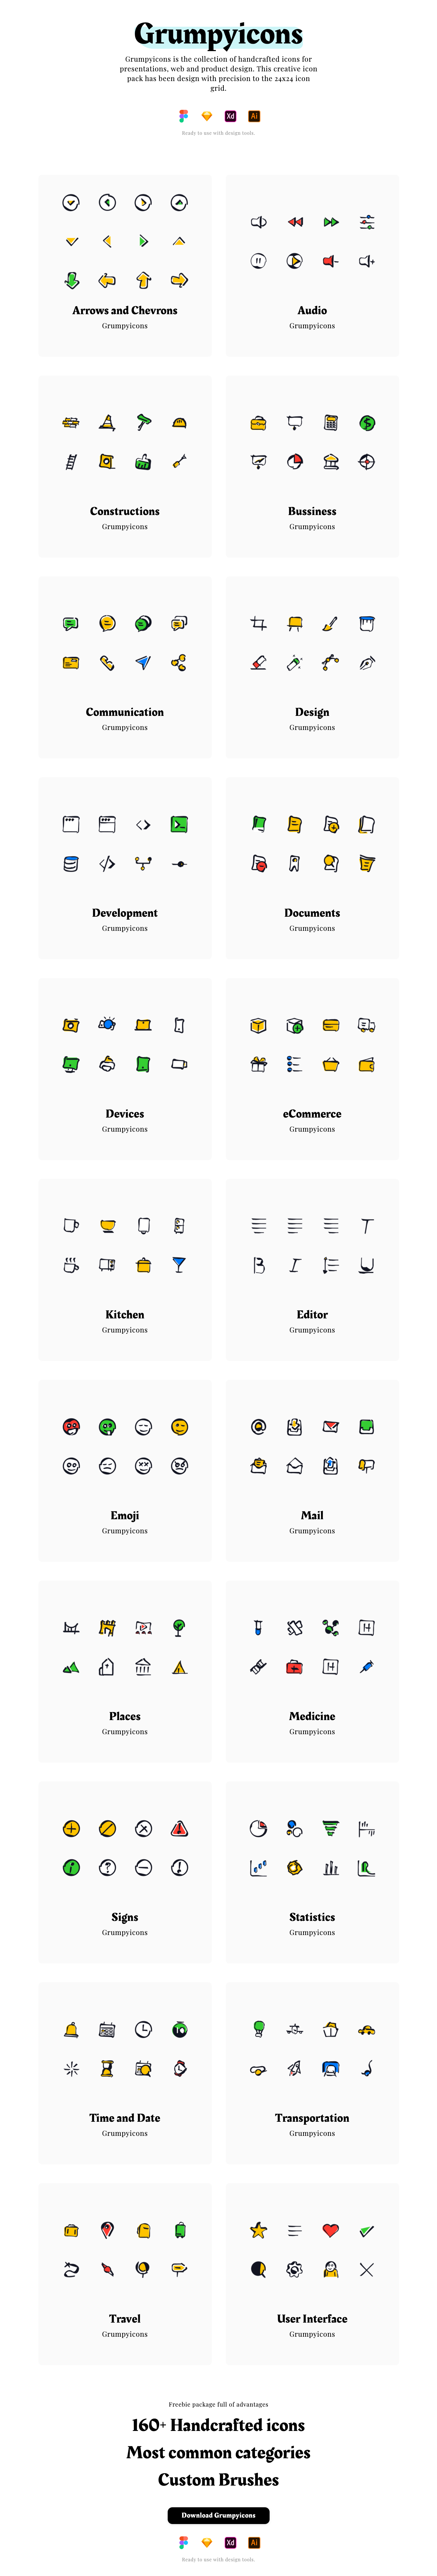 Grumpyicons Free Icons Pack - Grumpyicons is the collection of handcrafted icons for presentations, web and product design. This creative icon pack has been design with precision to the 24x24 icon grid.